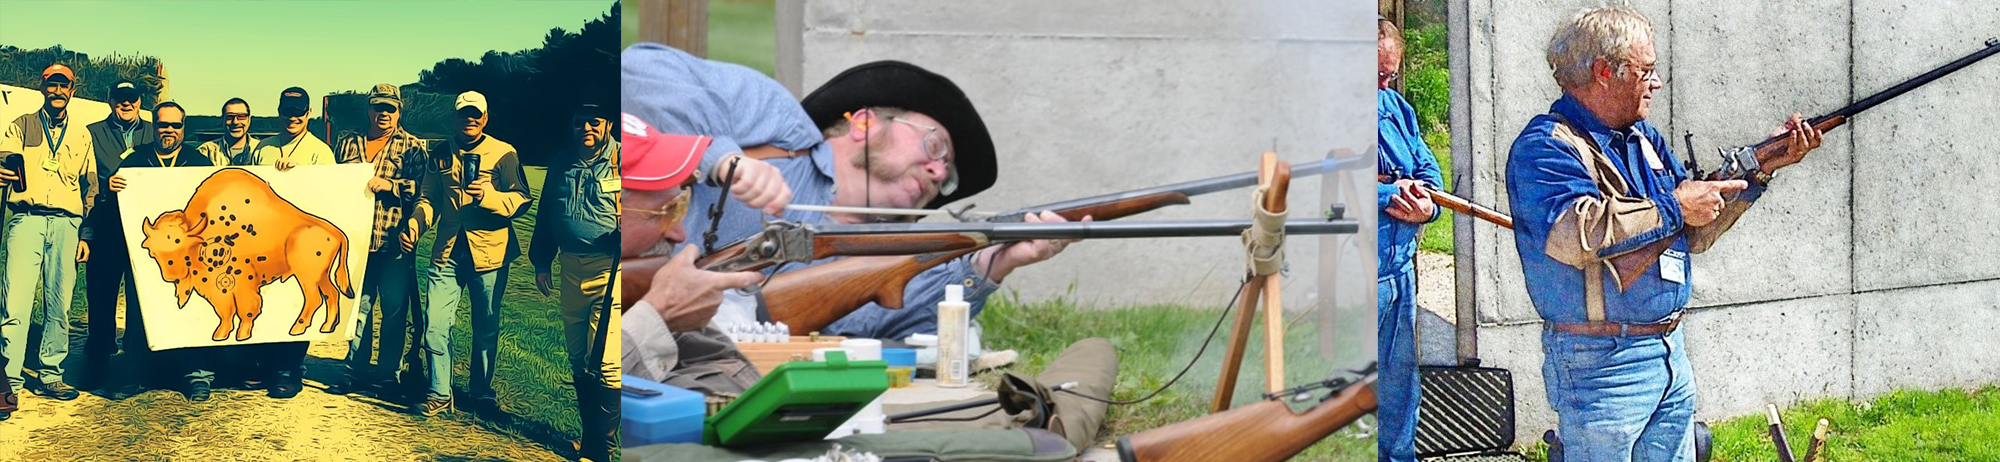 Competition: Matches and Leagues - Sheboygan Rifle and